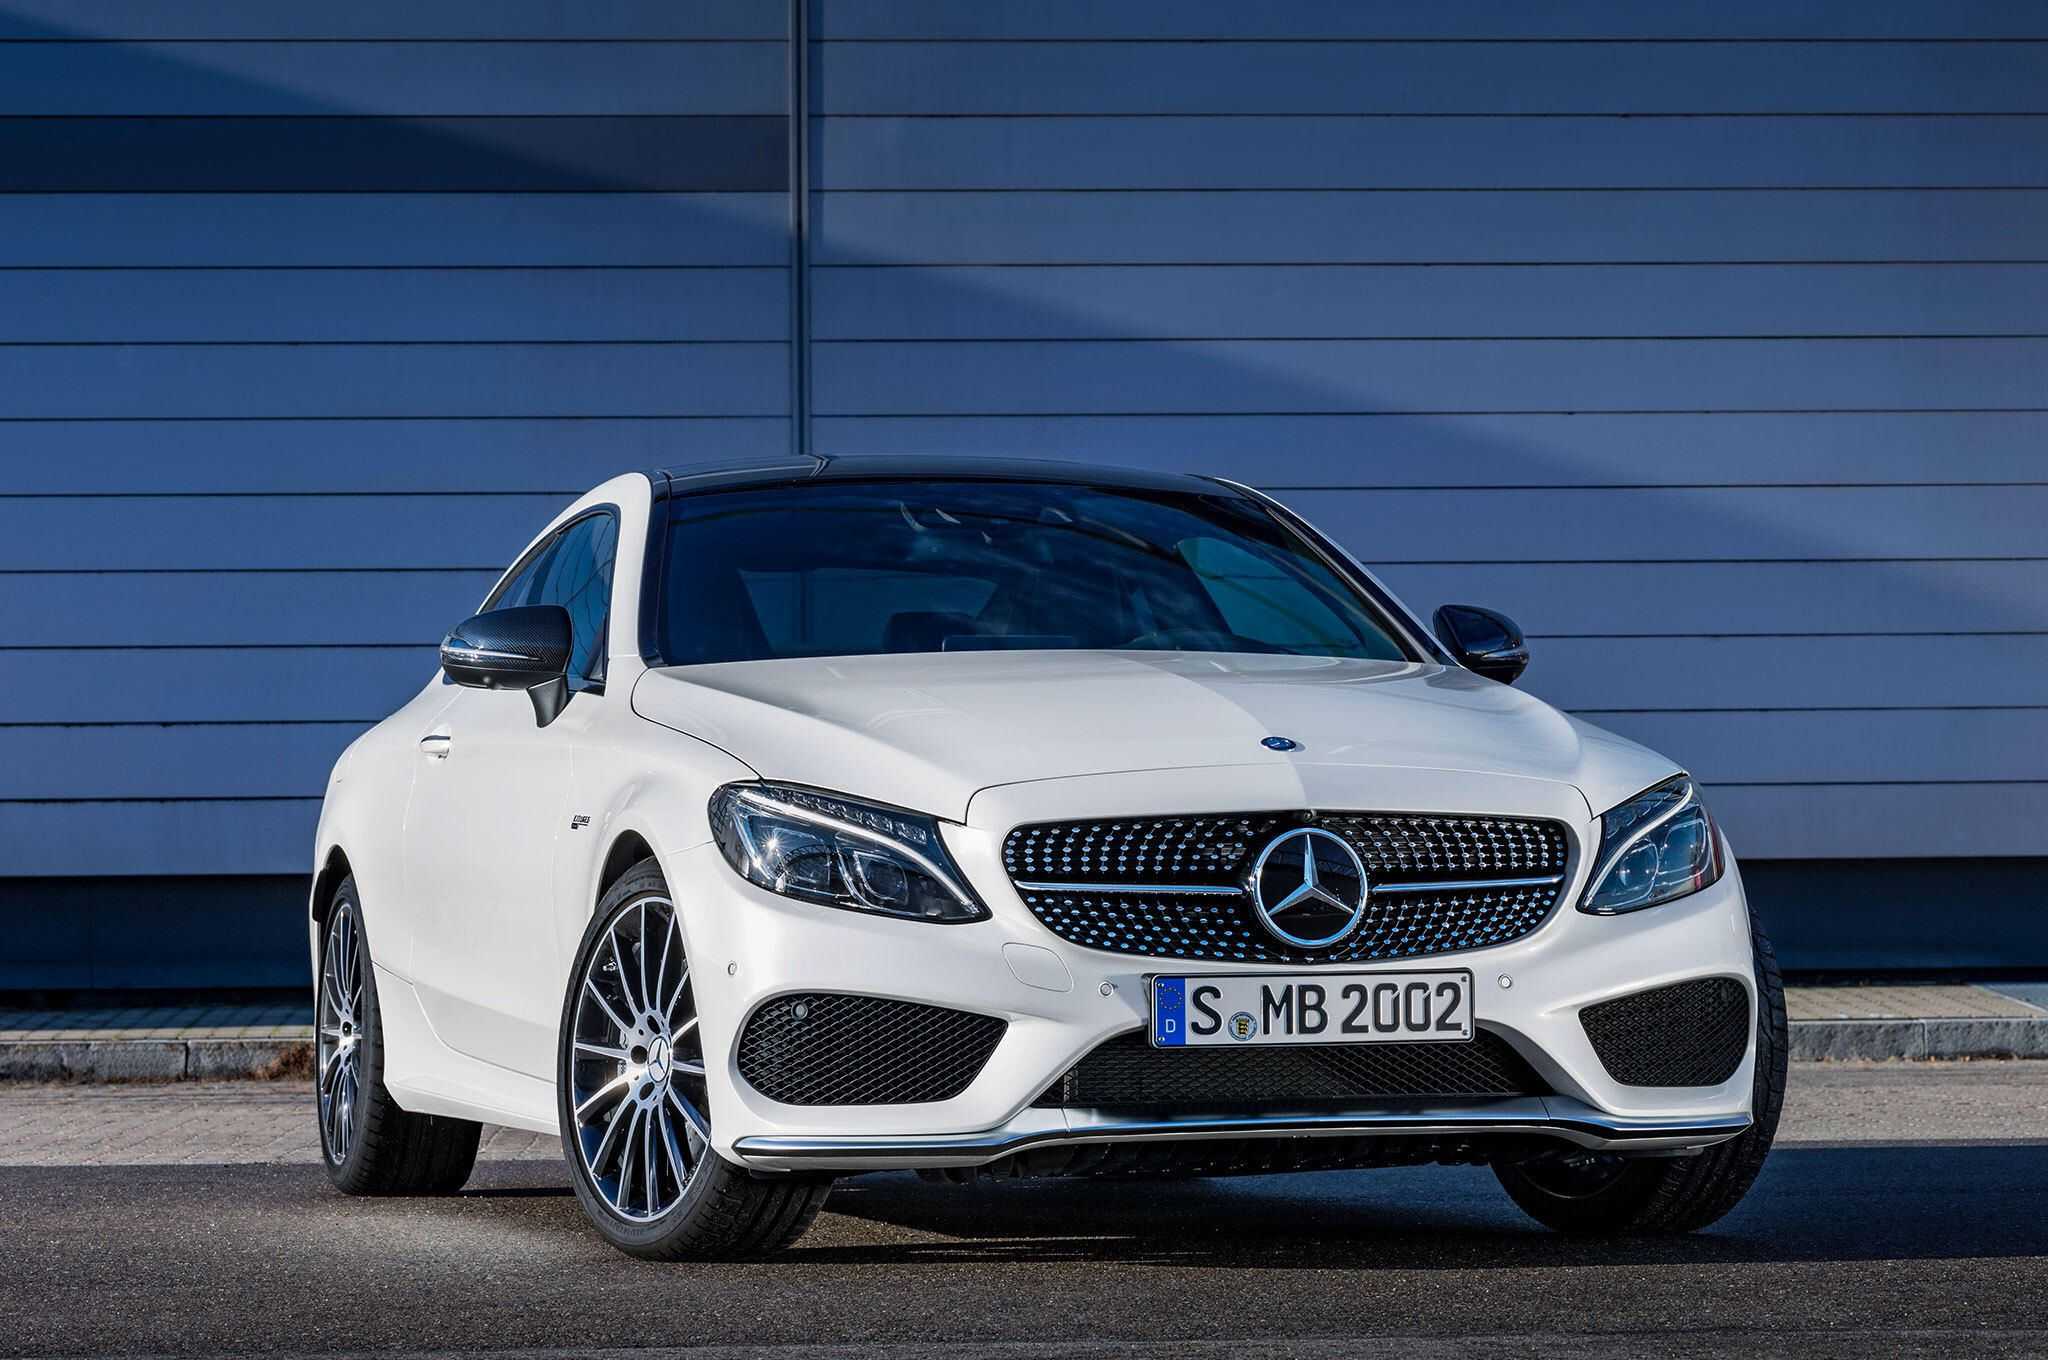 2017 Mercedes Amg C43 Coupe Joins The C Class Family Mercedes Amg Mercedes Benz Retail Mercedes Benz Cars